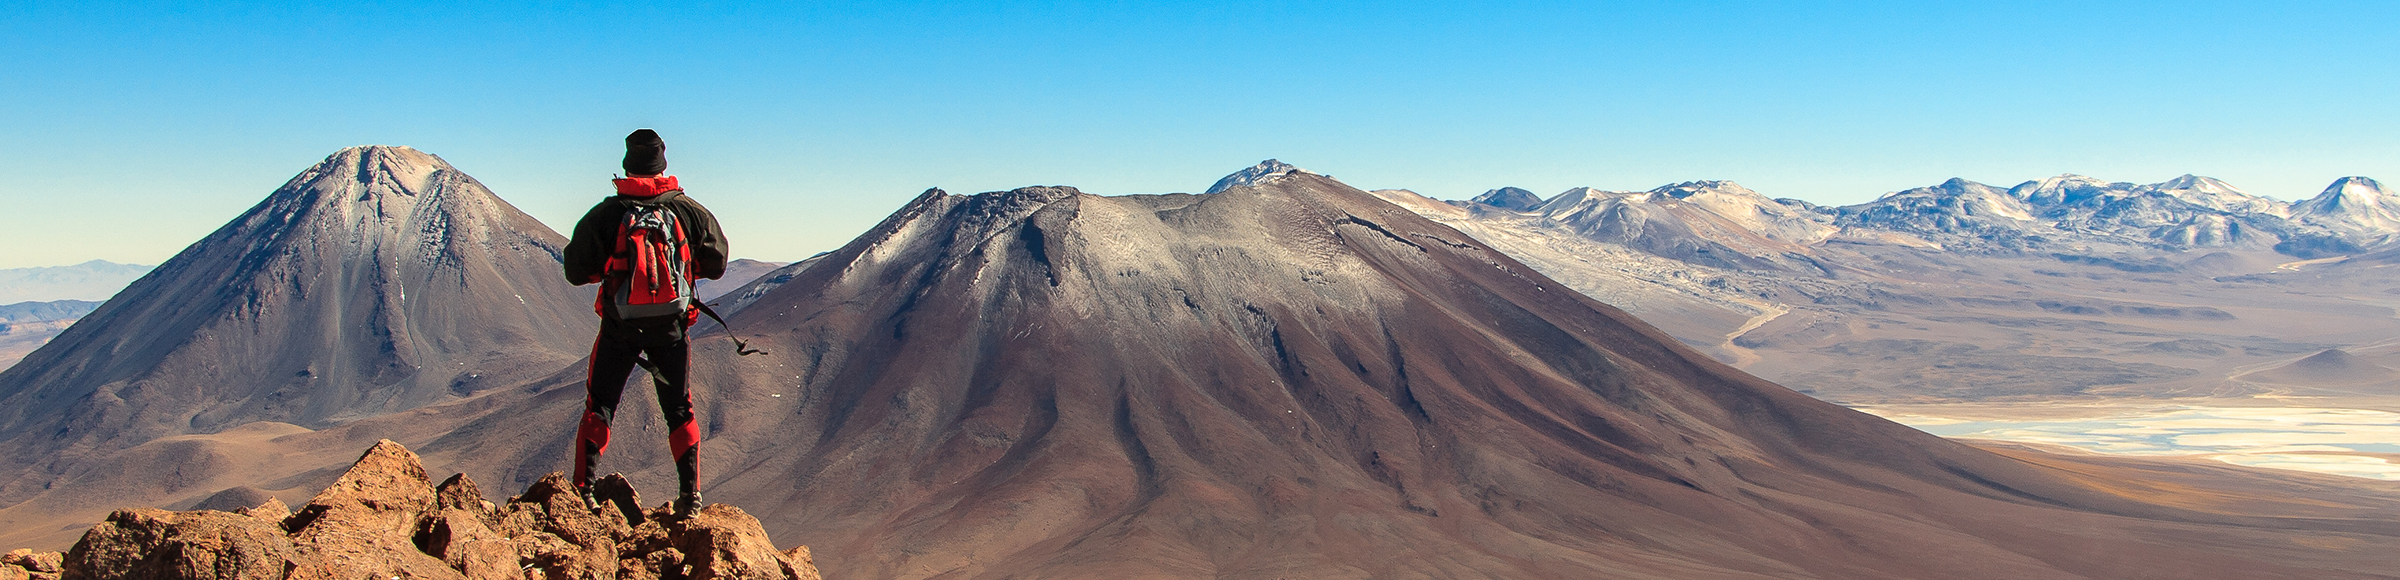 2400x580_Banner_Amerika,Chile ©shutterstock